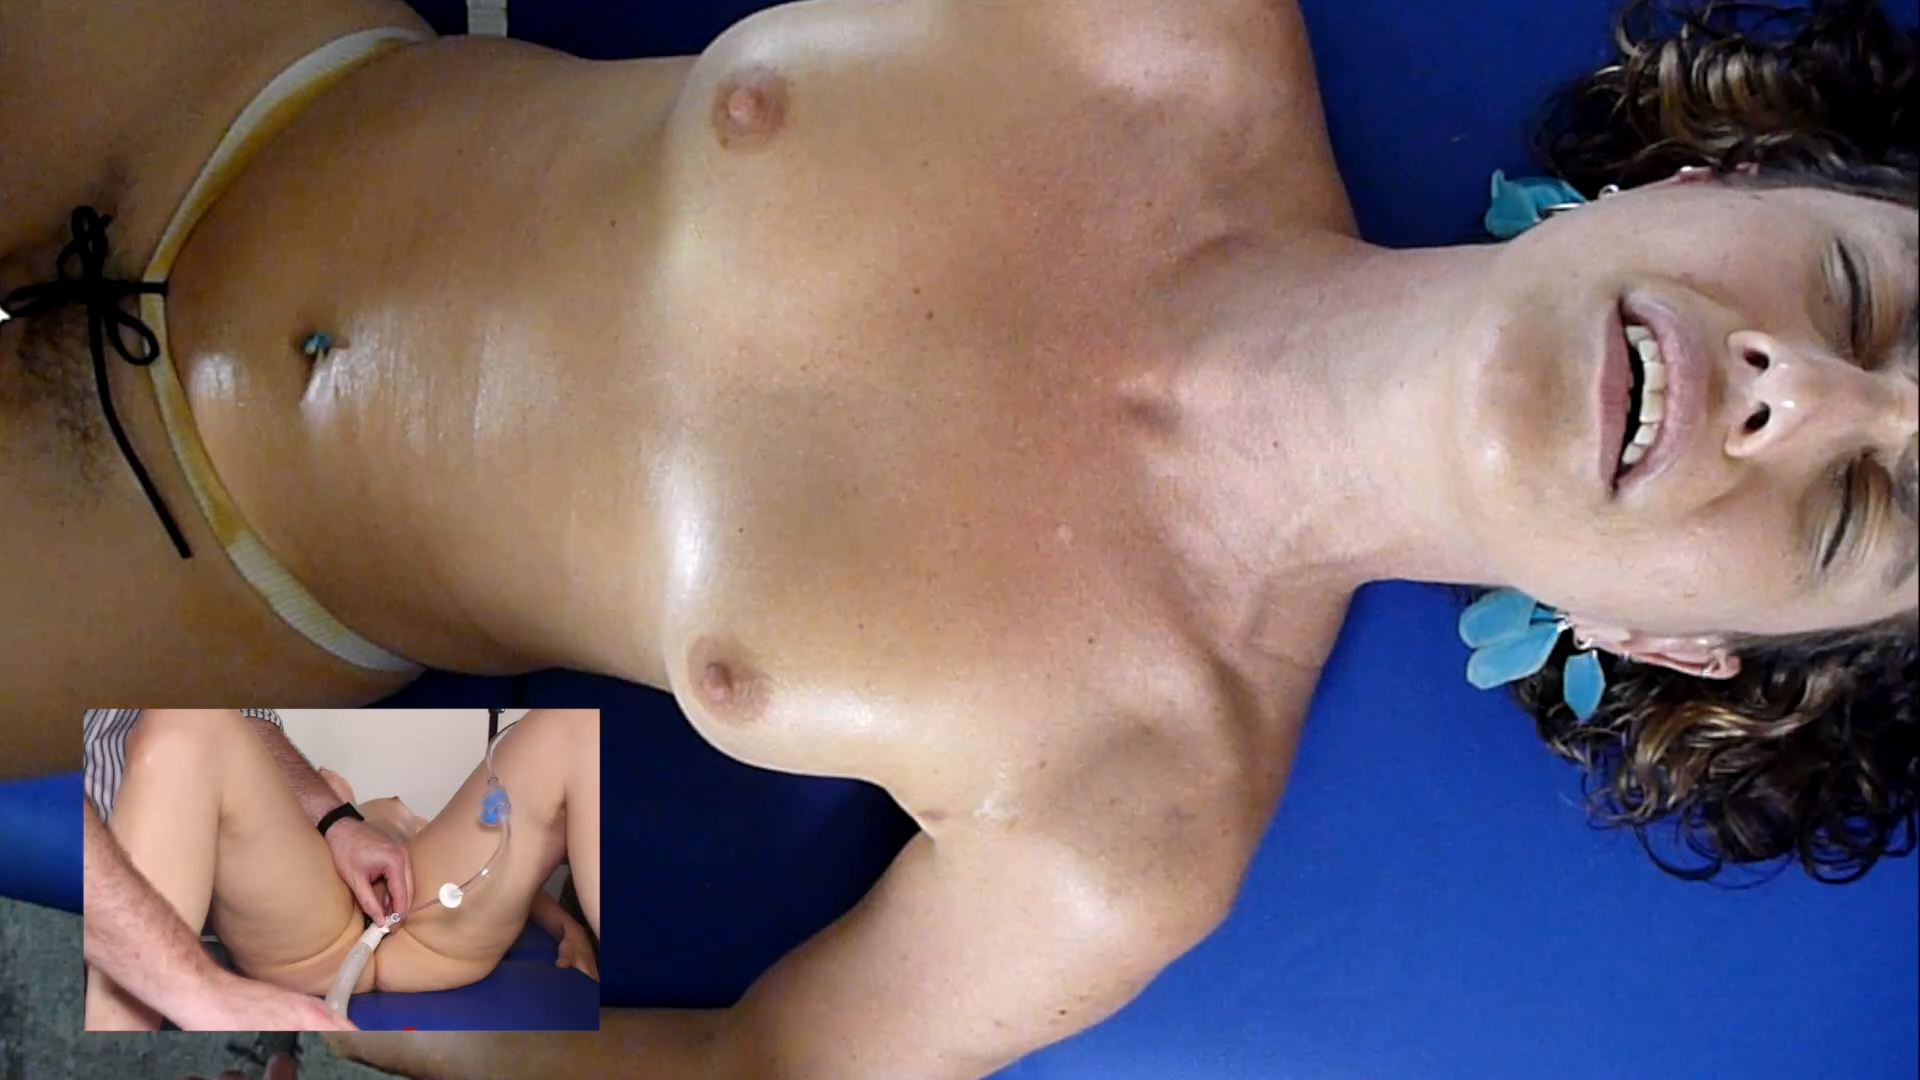 [WATER AND POWER] Lexyk Colonic Part 2 [FULL HD][1080p][MP4]